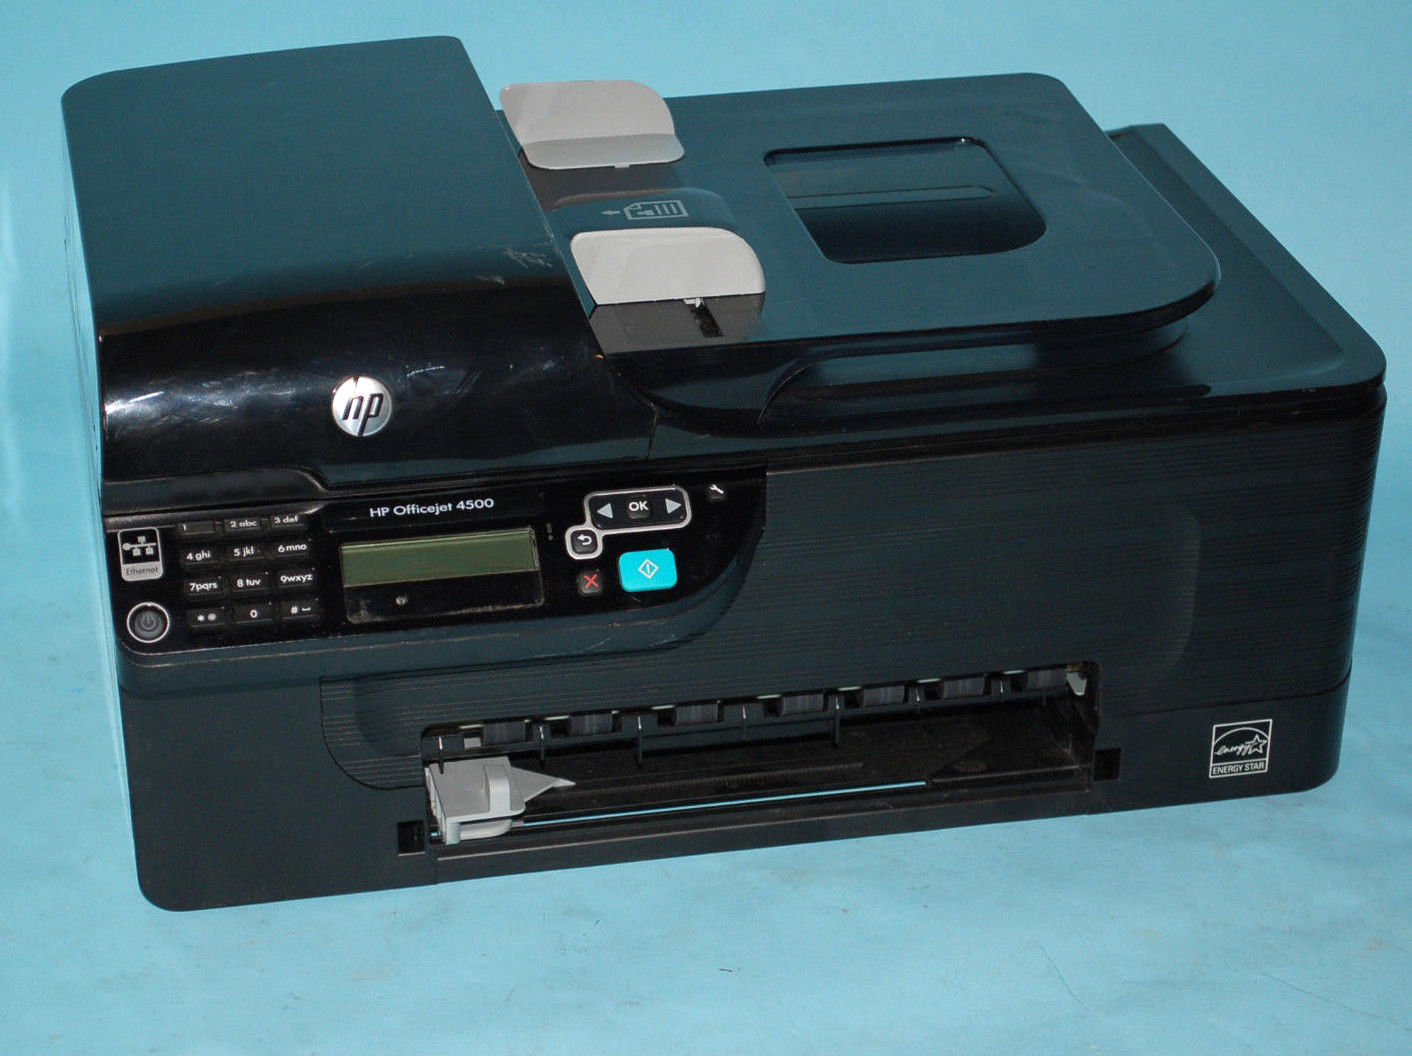 HP Officejet 4500 Network All-in-One Printer G510g NO TRAY